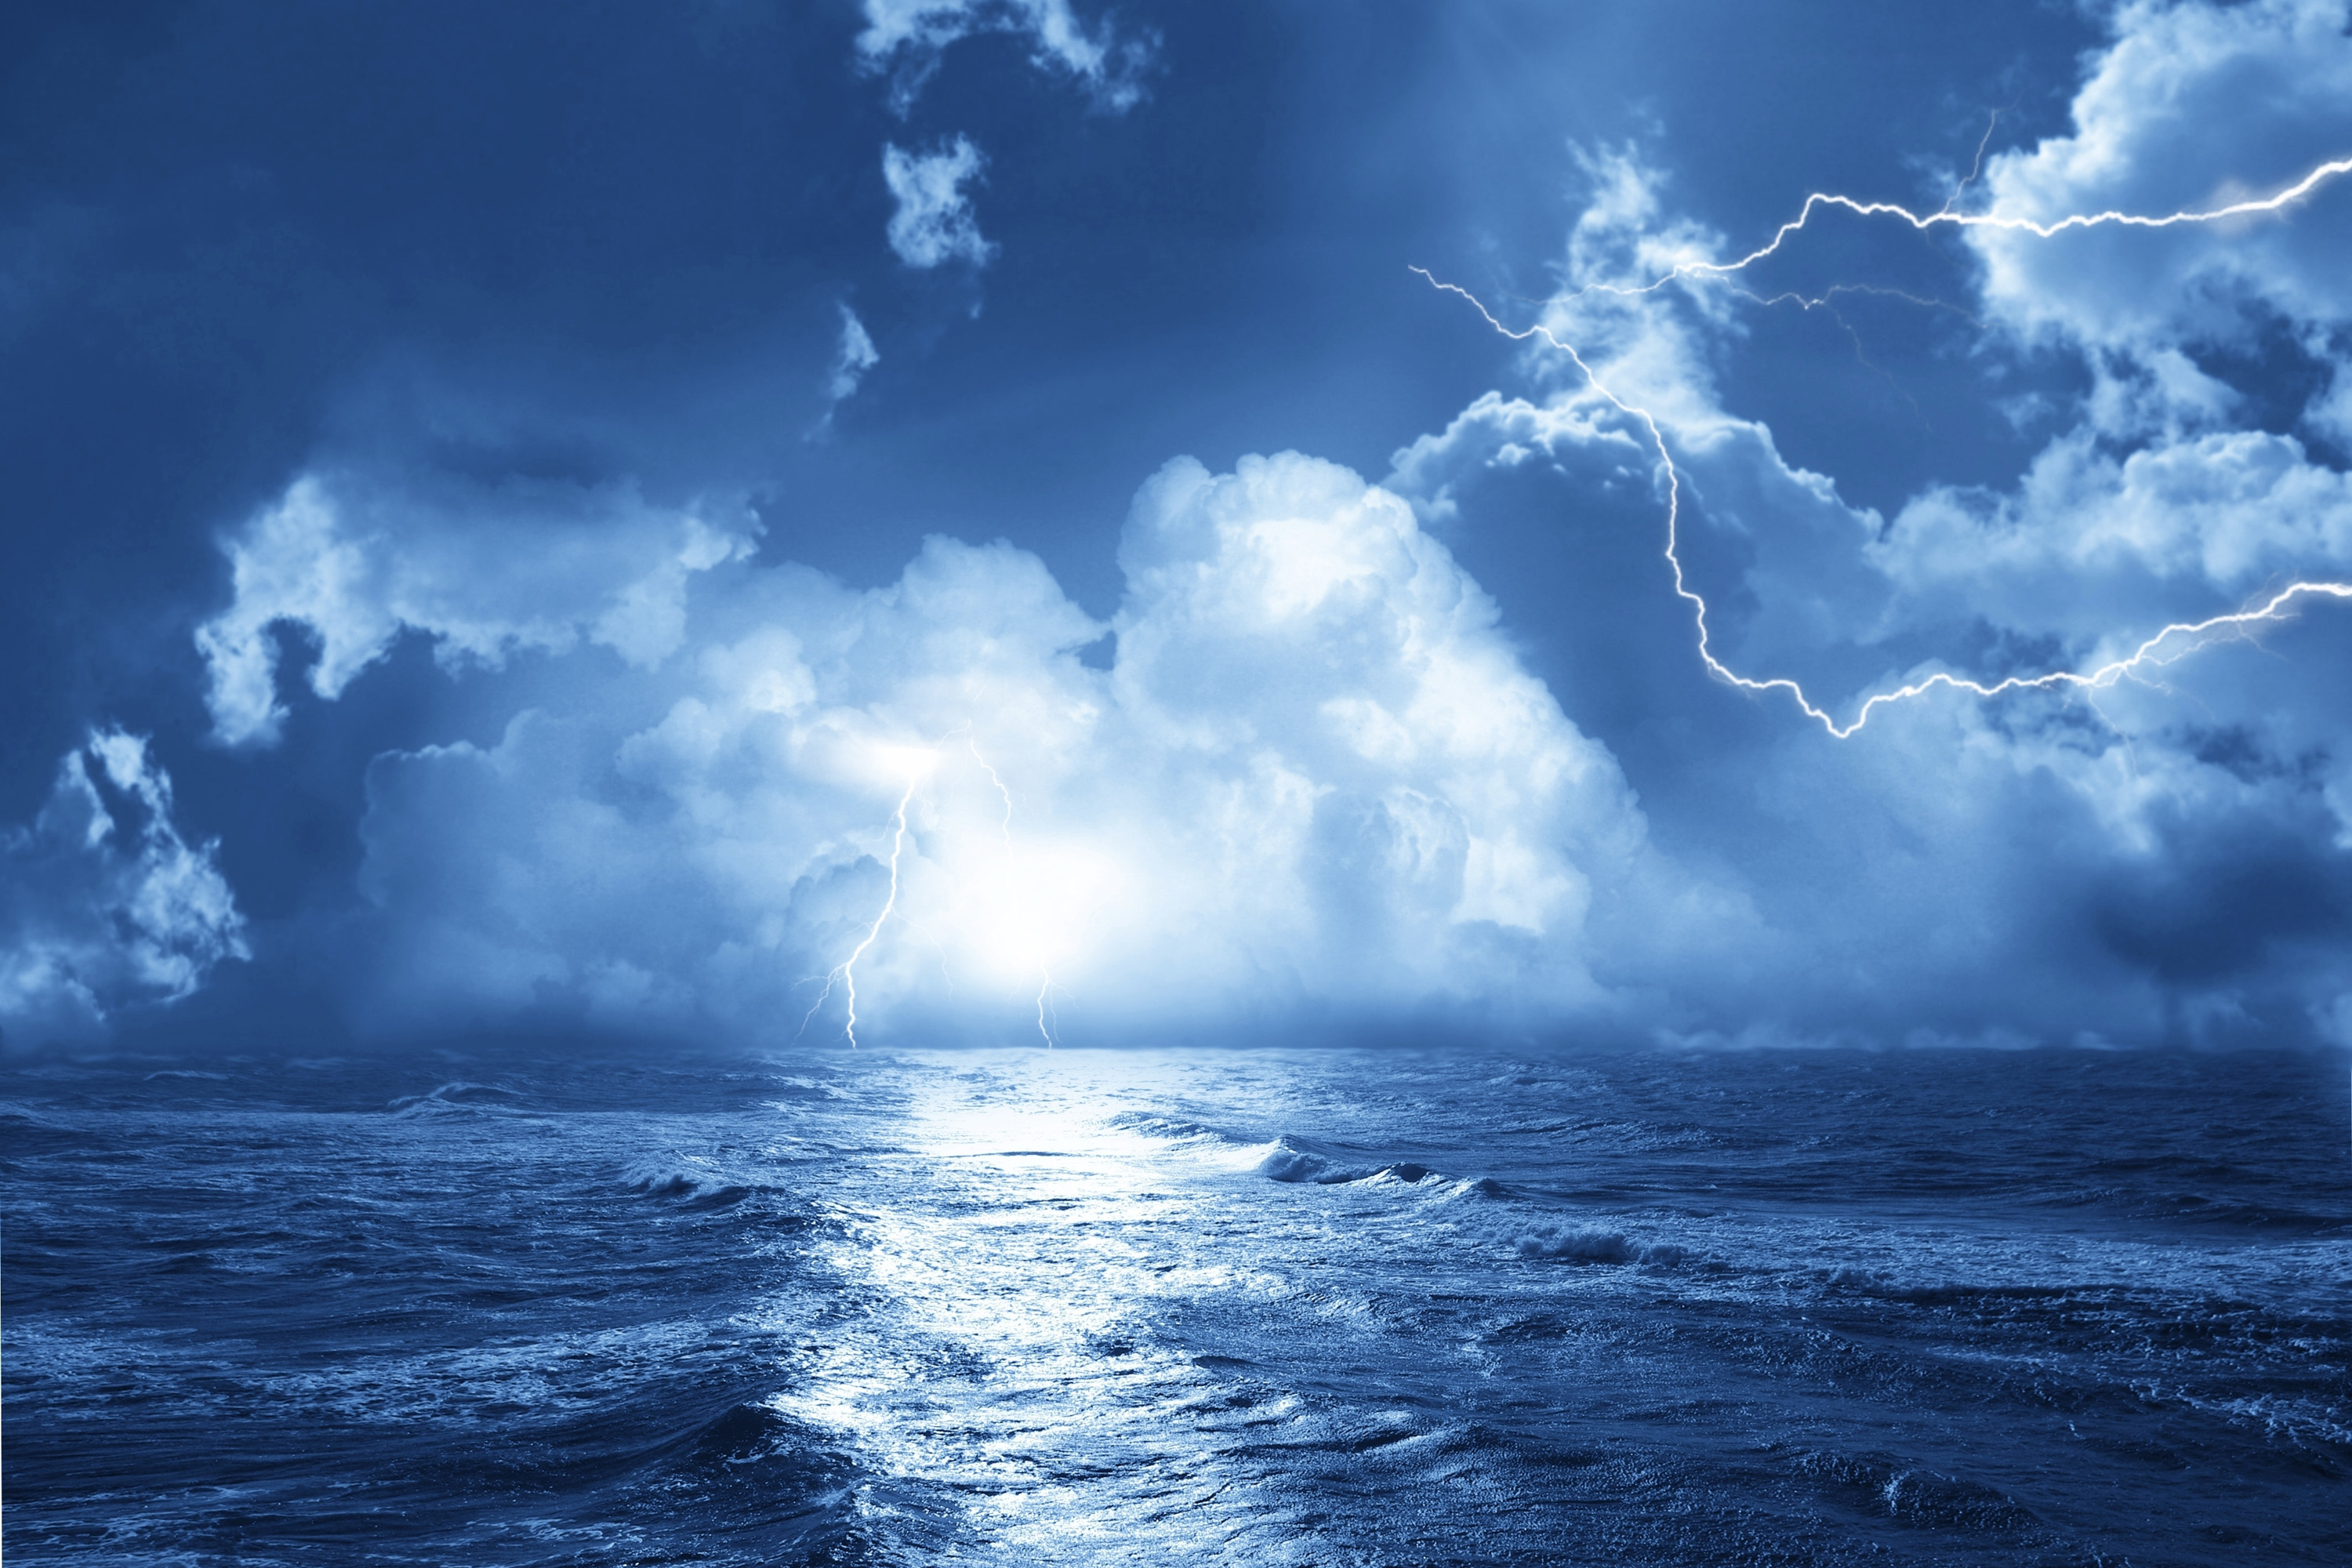 Ocean Storm Desktop Backgrounds HD Wallpapers 3000x2000